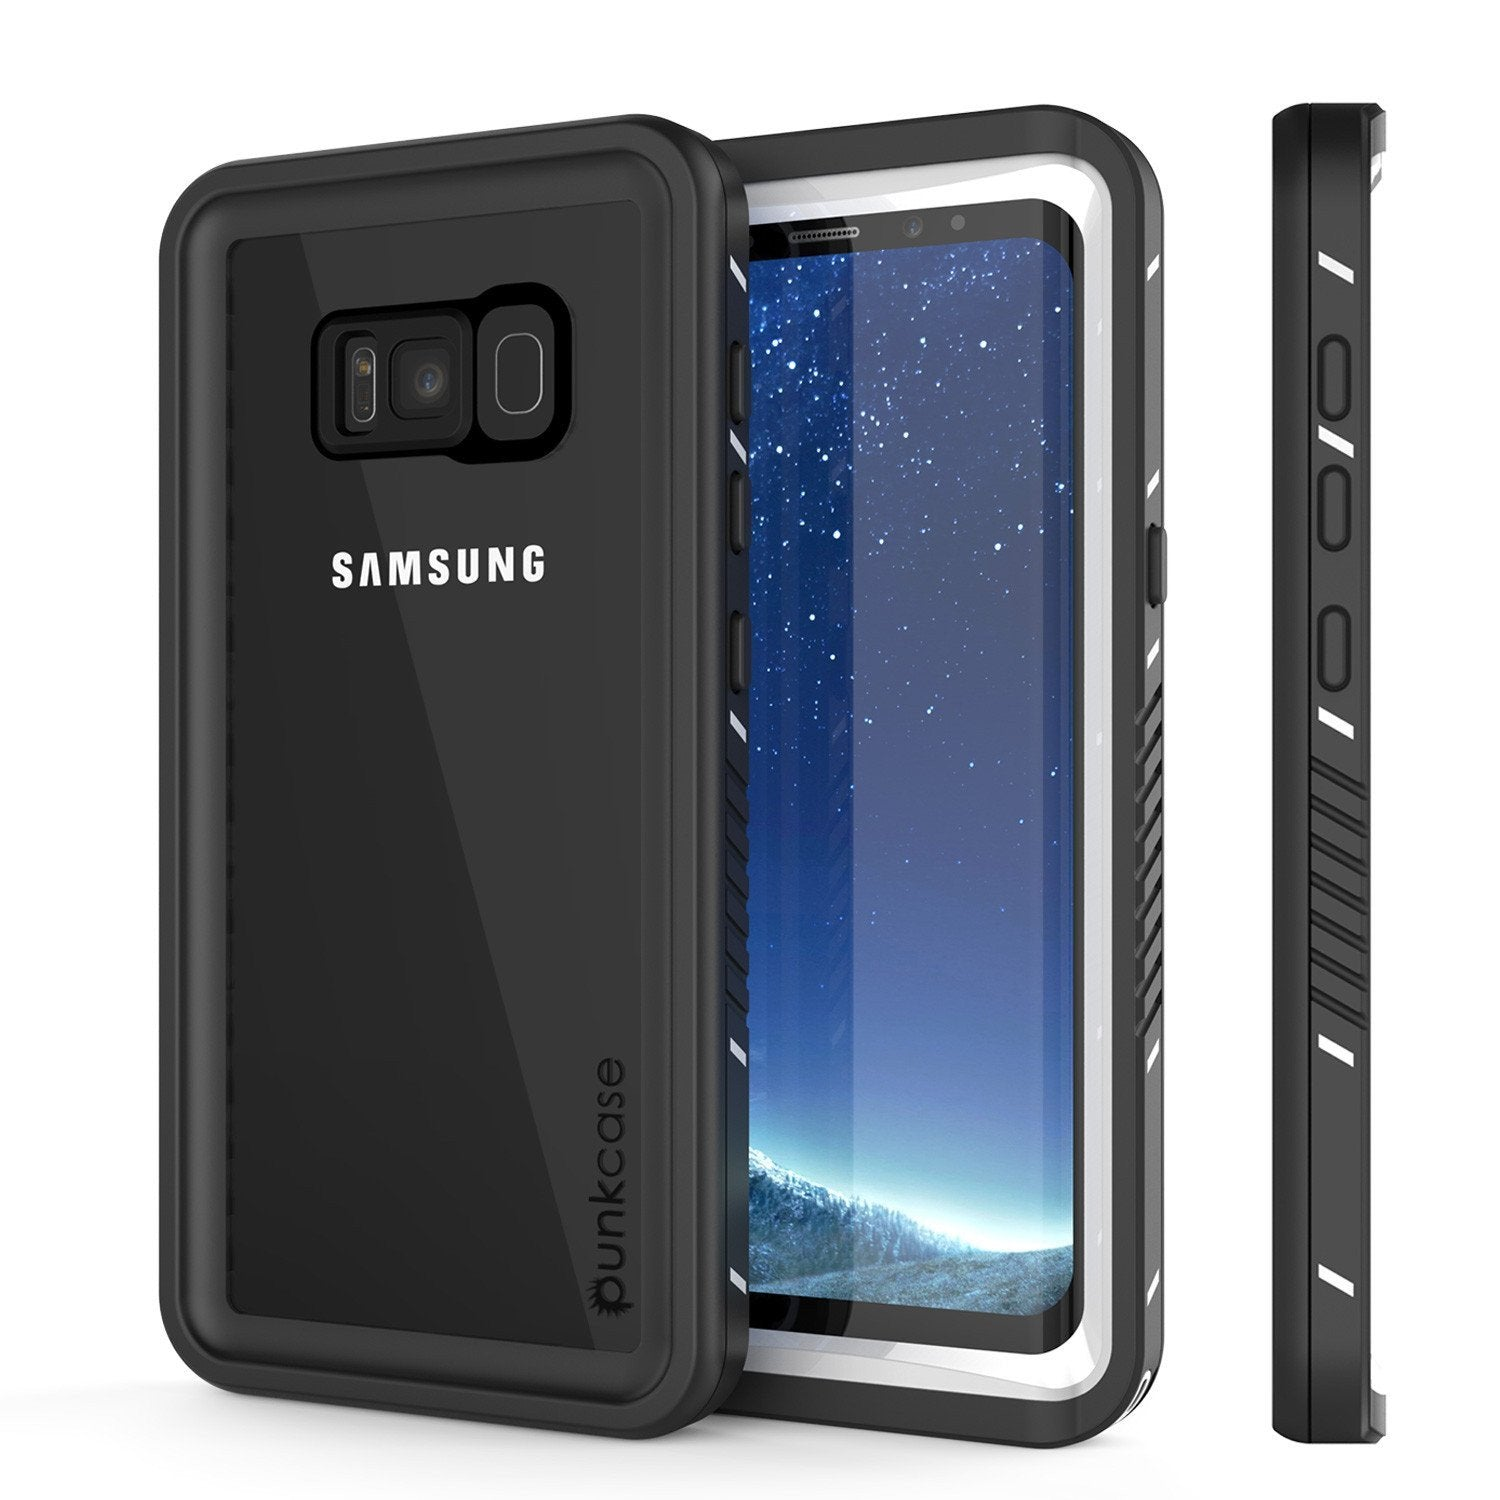 Galaxy S8 Case, Punkcase [Extreme Series] Armor White Cover